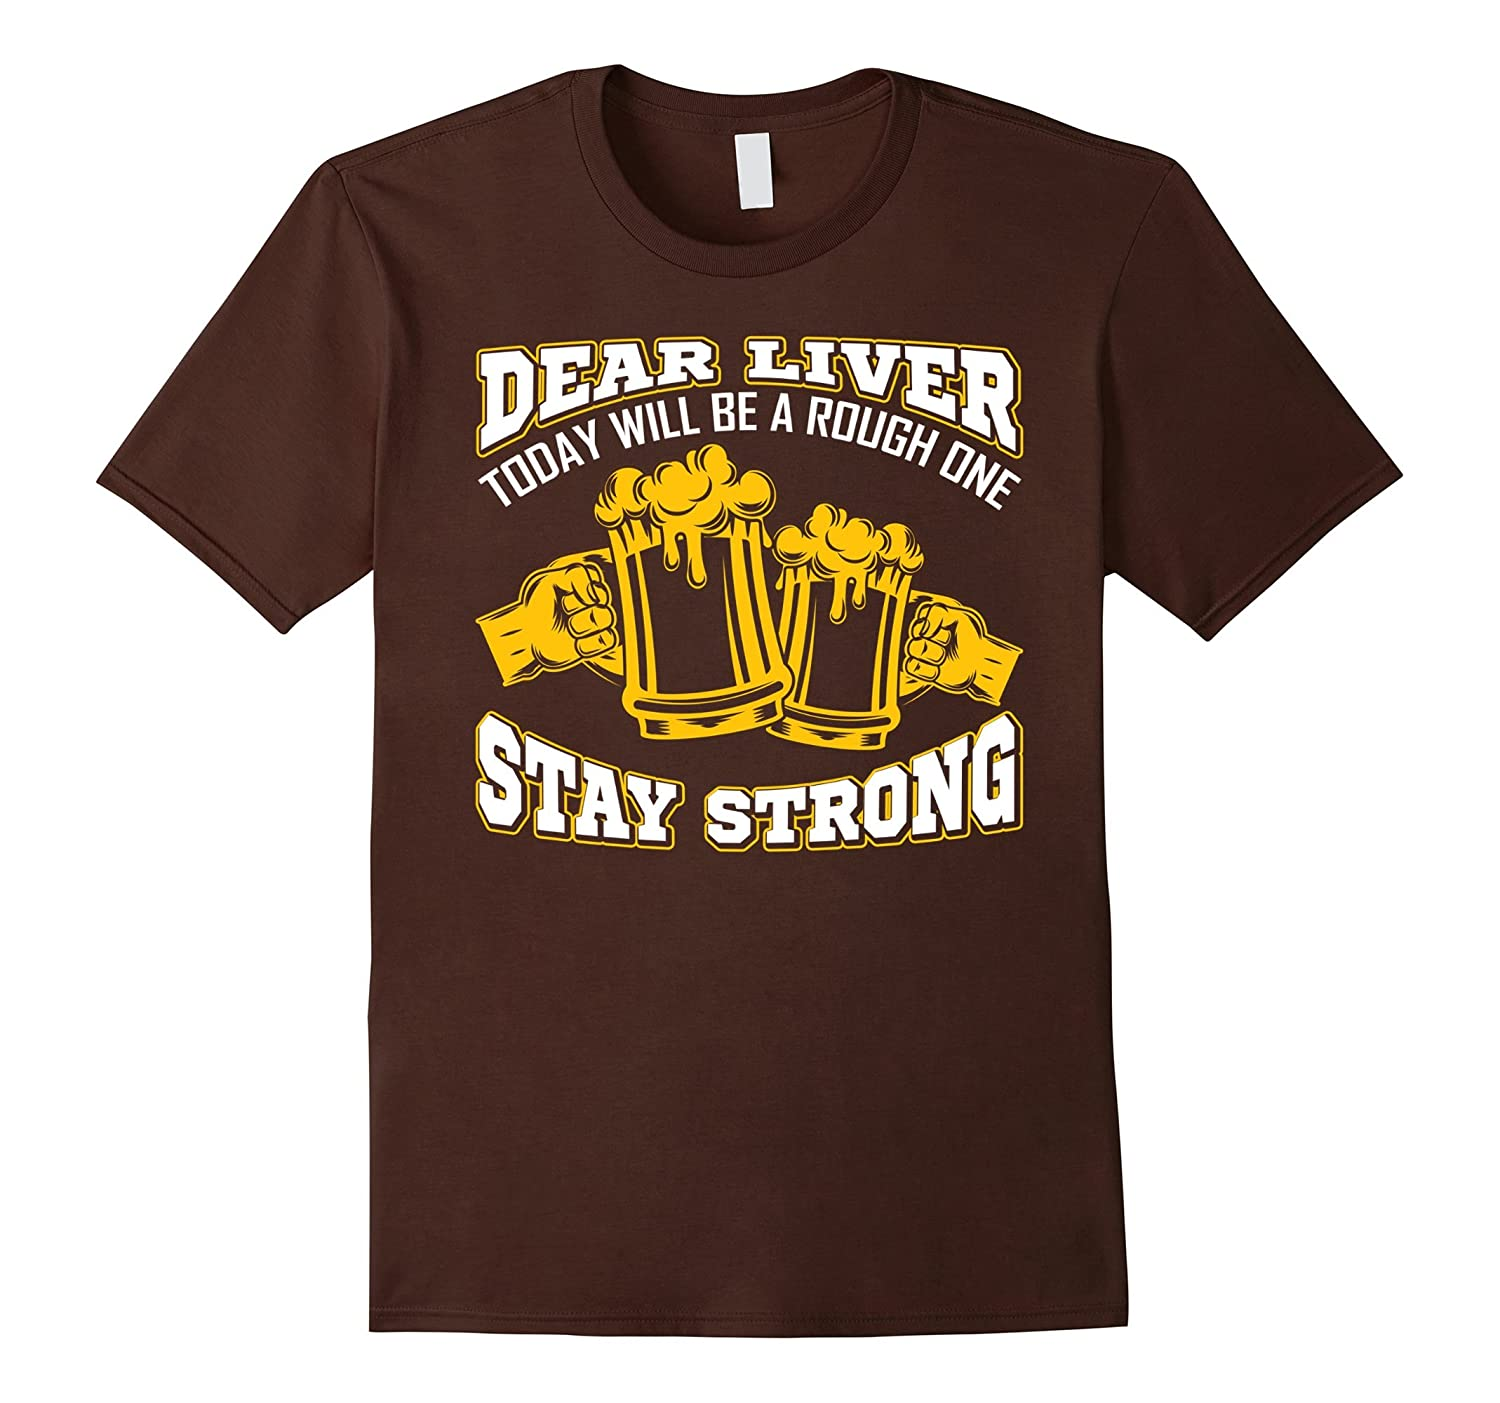 Dear liver today will be a rough one stay strong Funny shirt-AZP